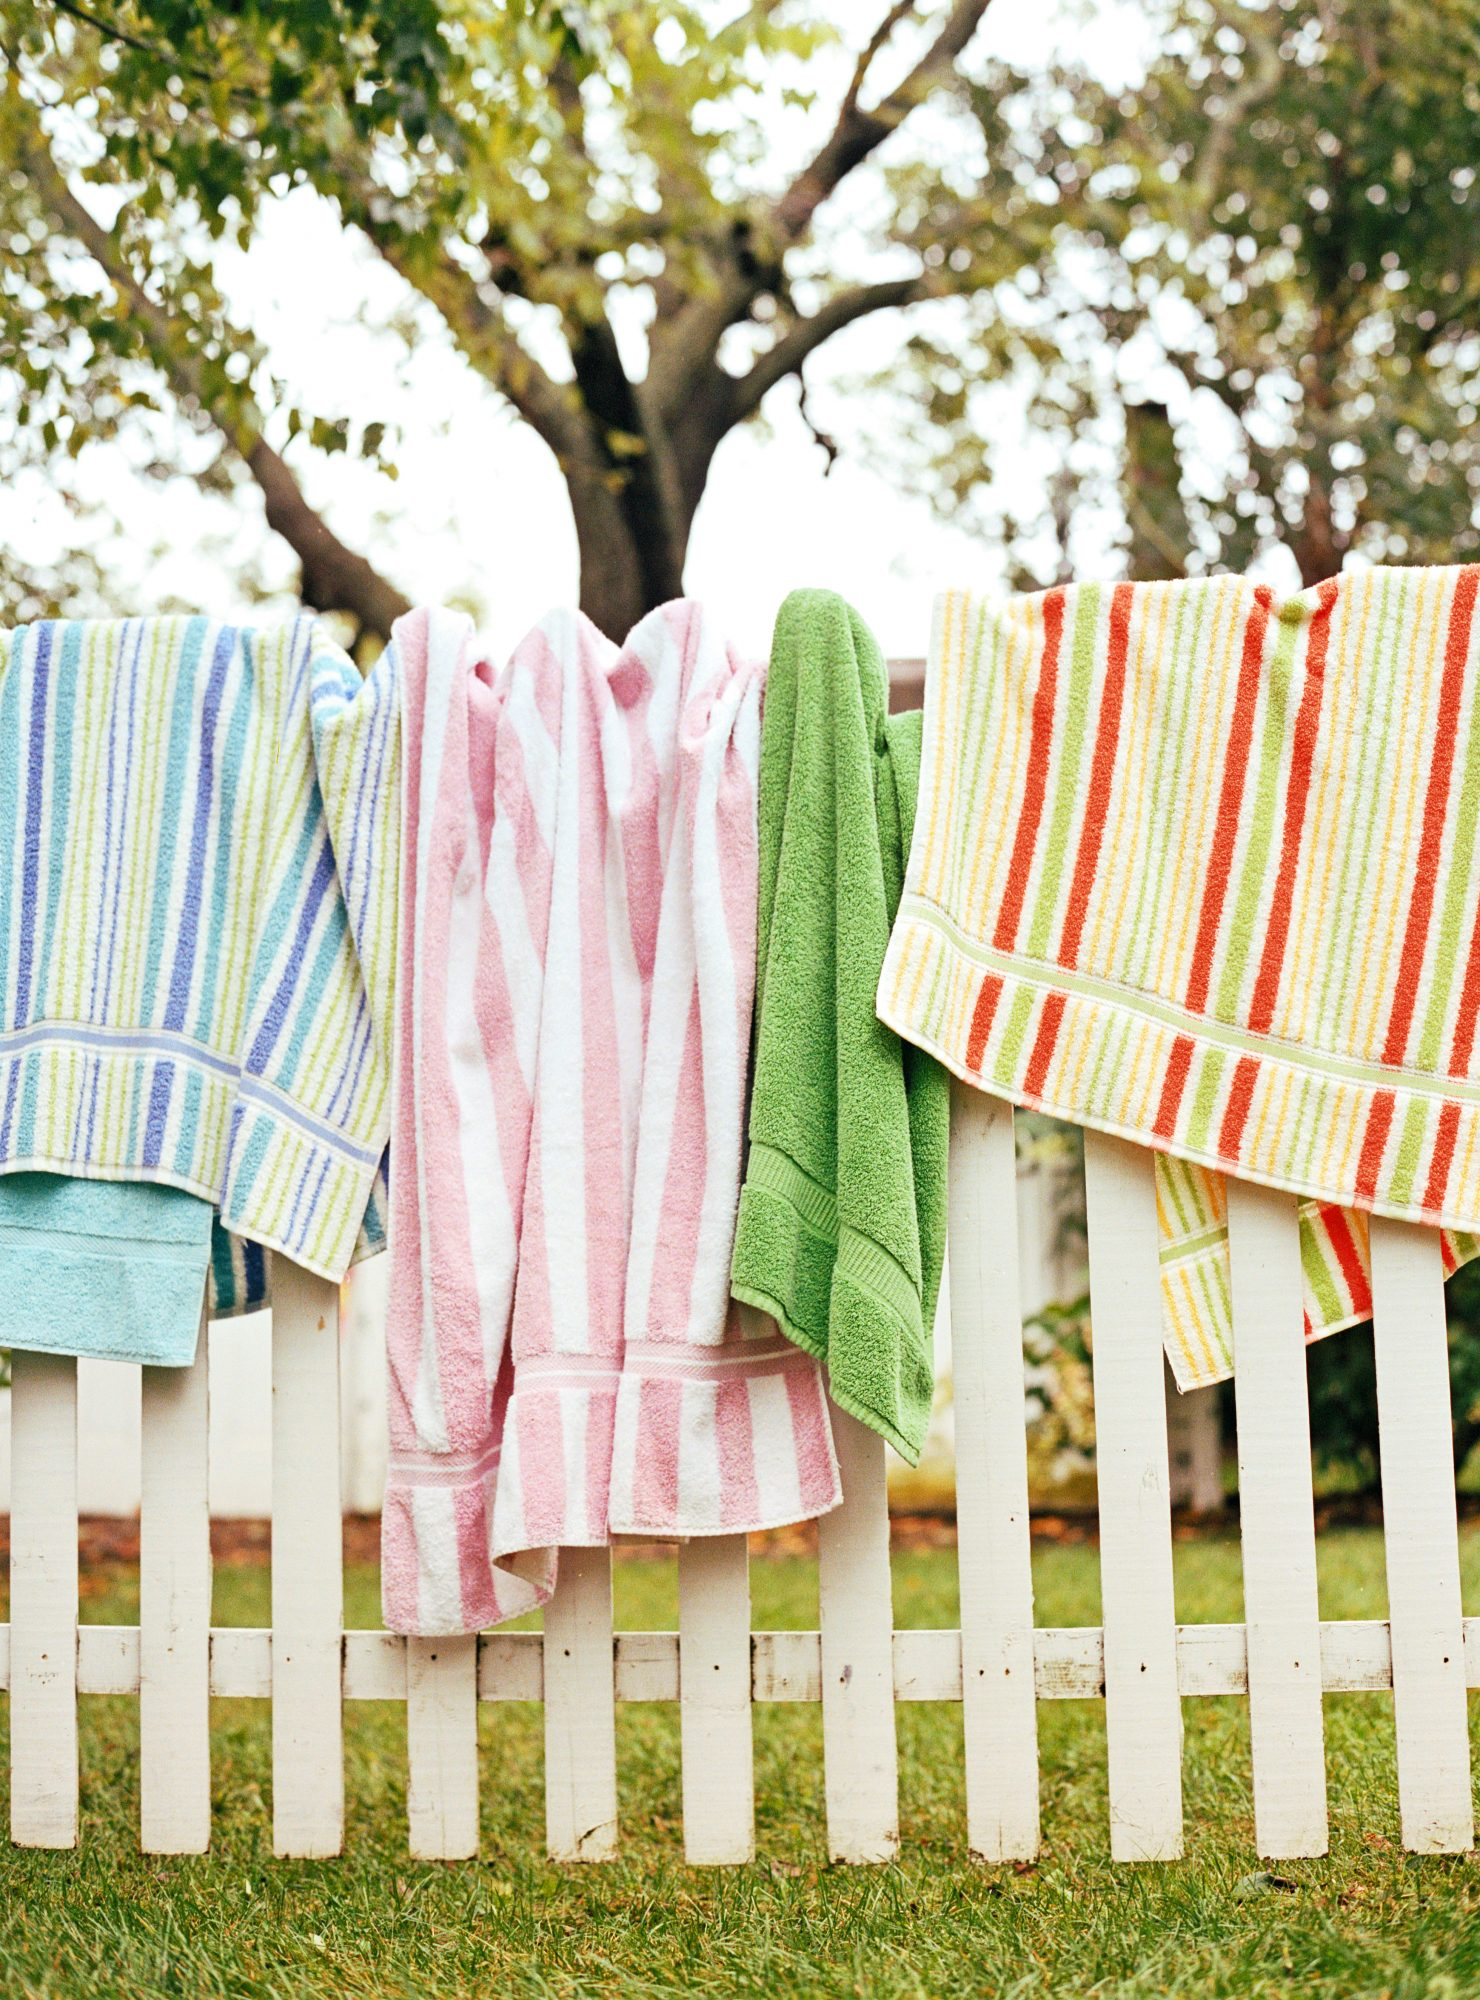 Beach Towels Hanging on Fence